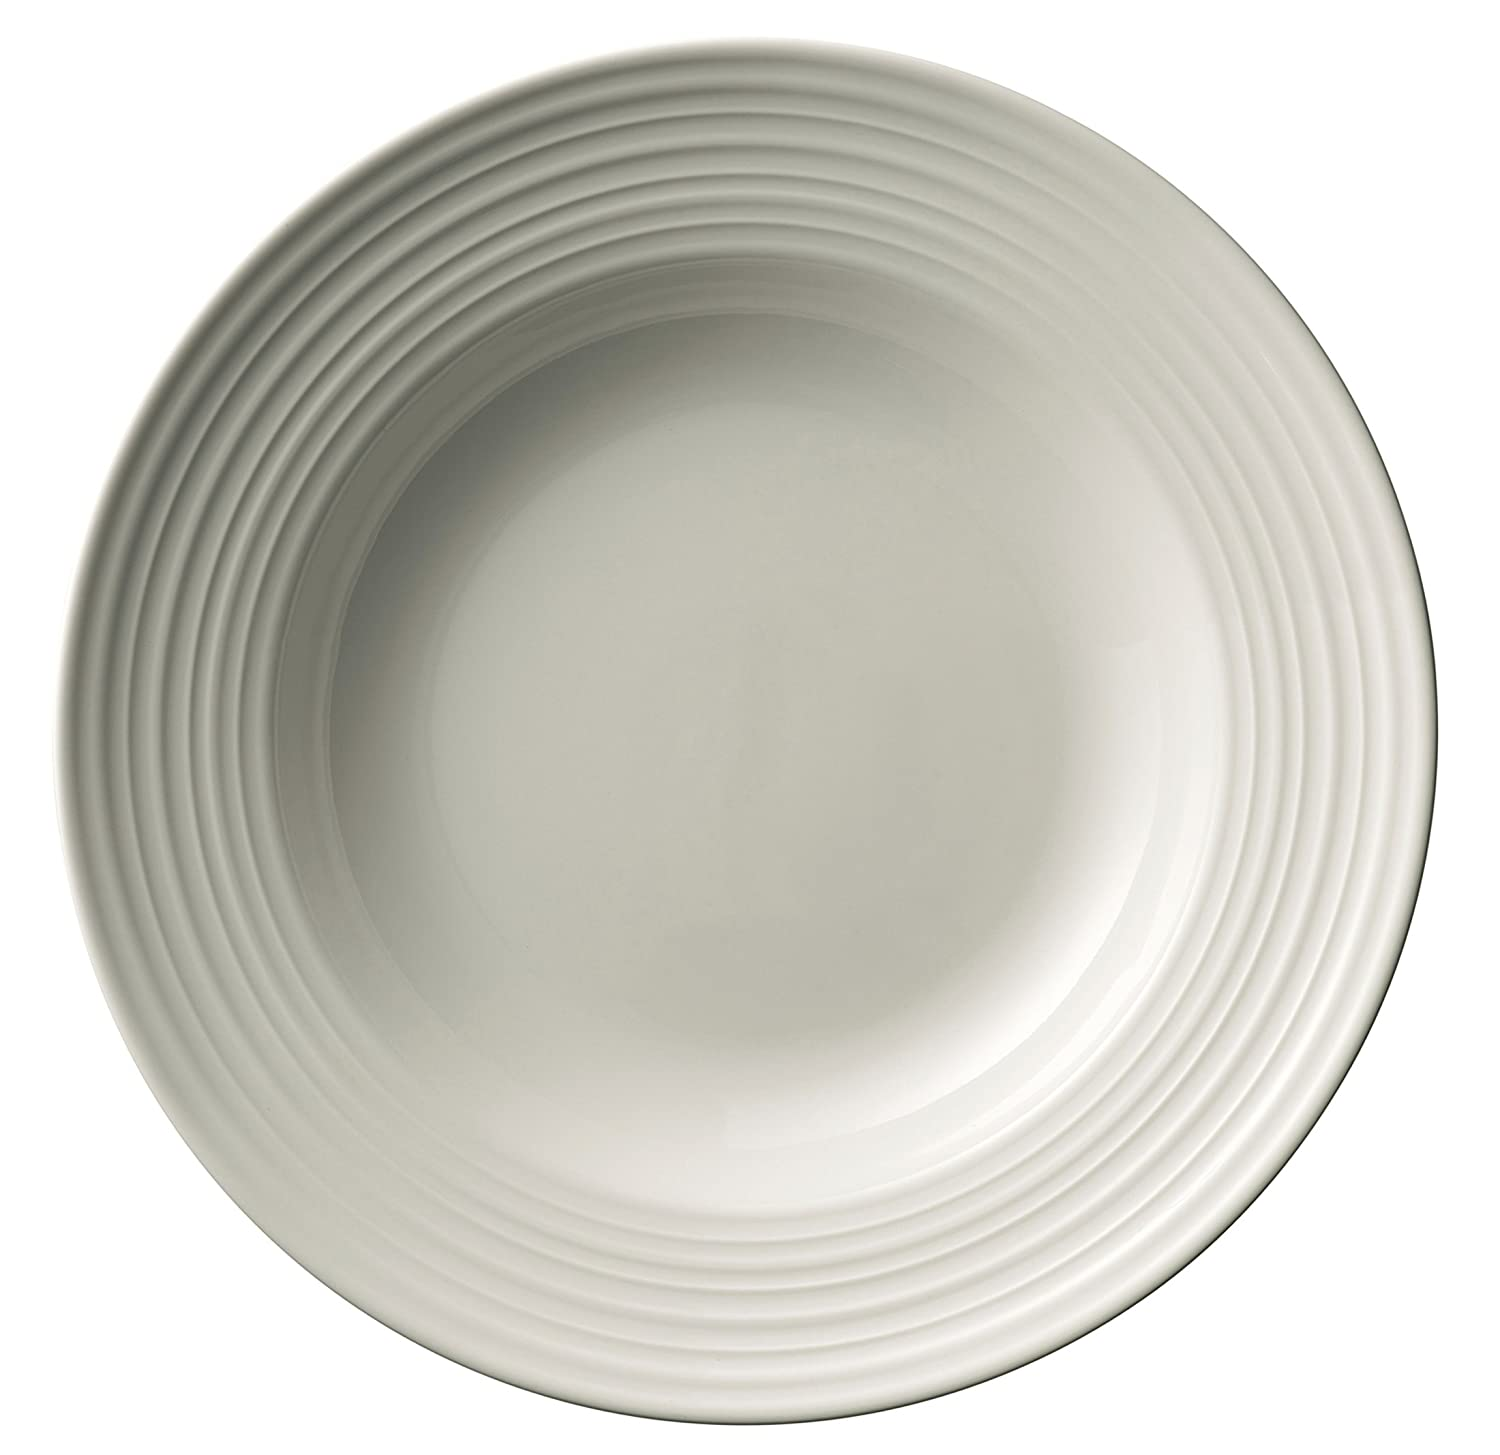 Belleek Pottery Ripple Pasta Bowls (Set of 4), White, Set of 4 7975